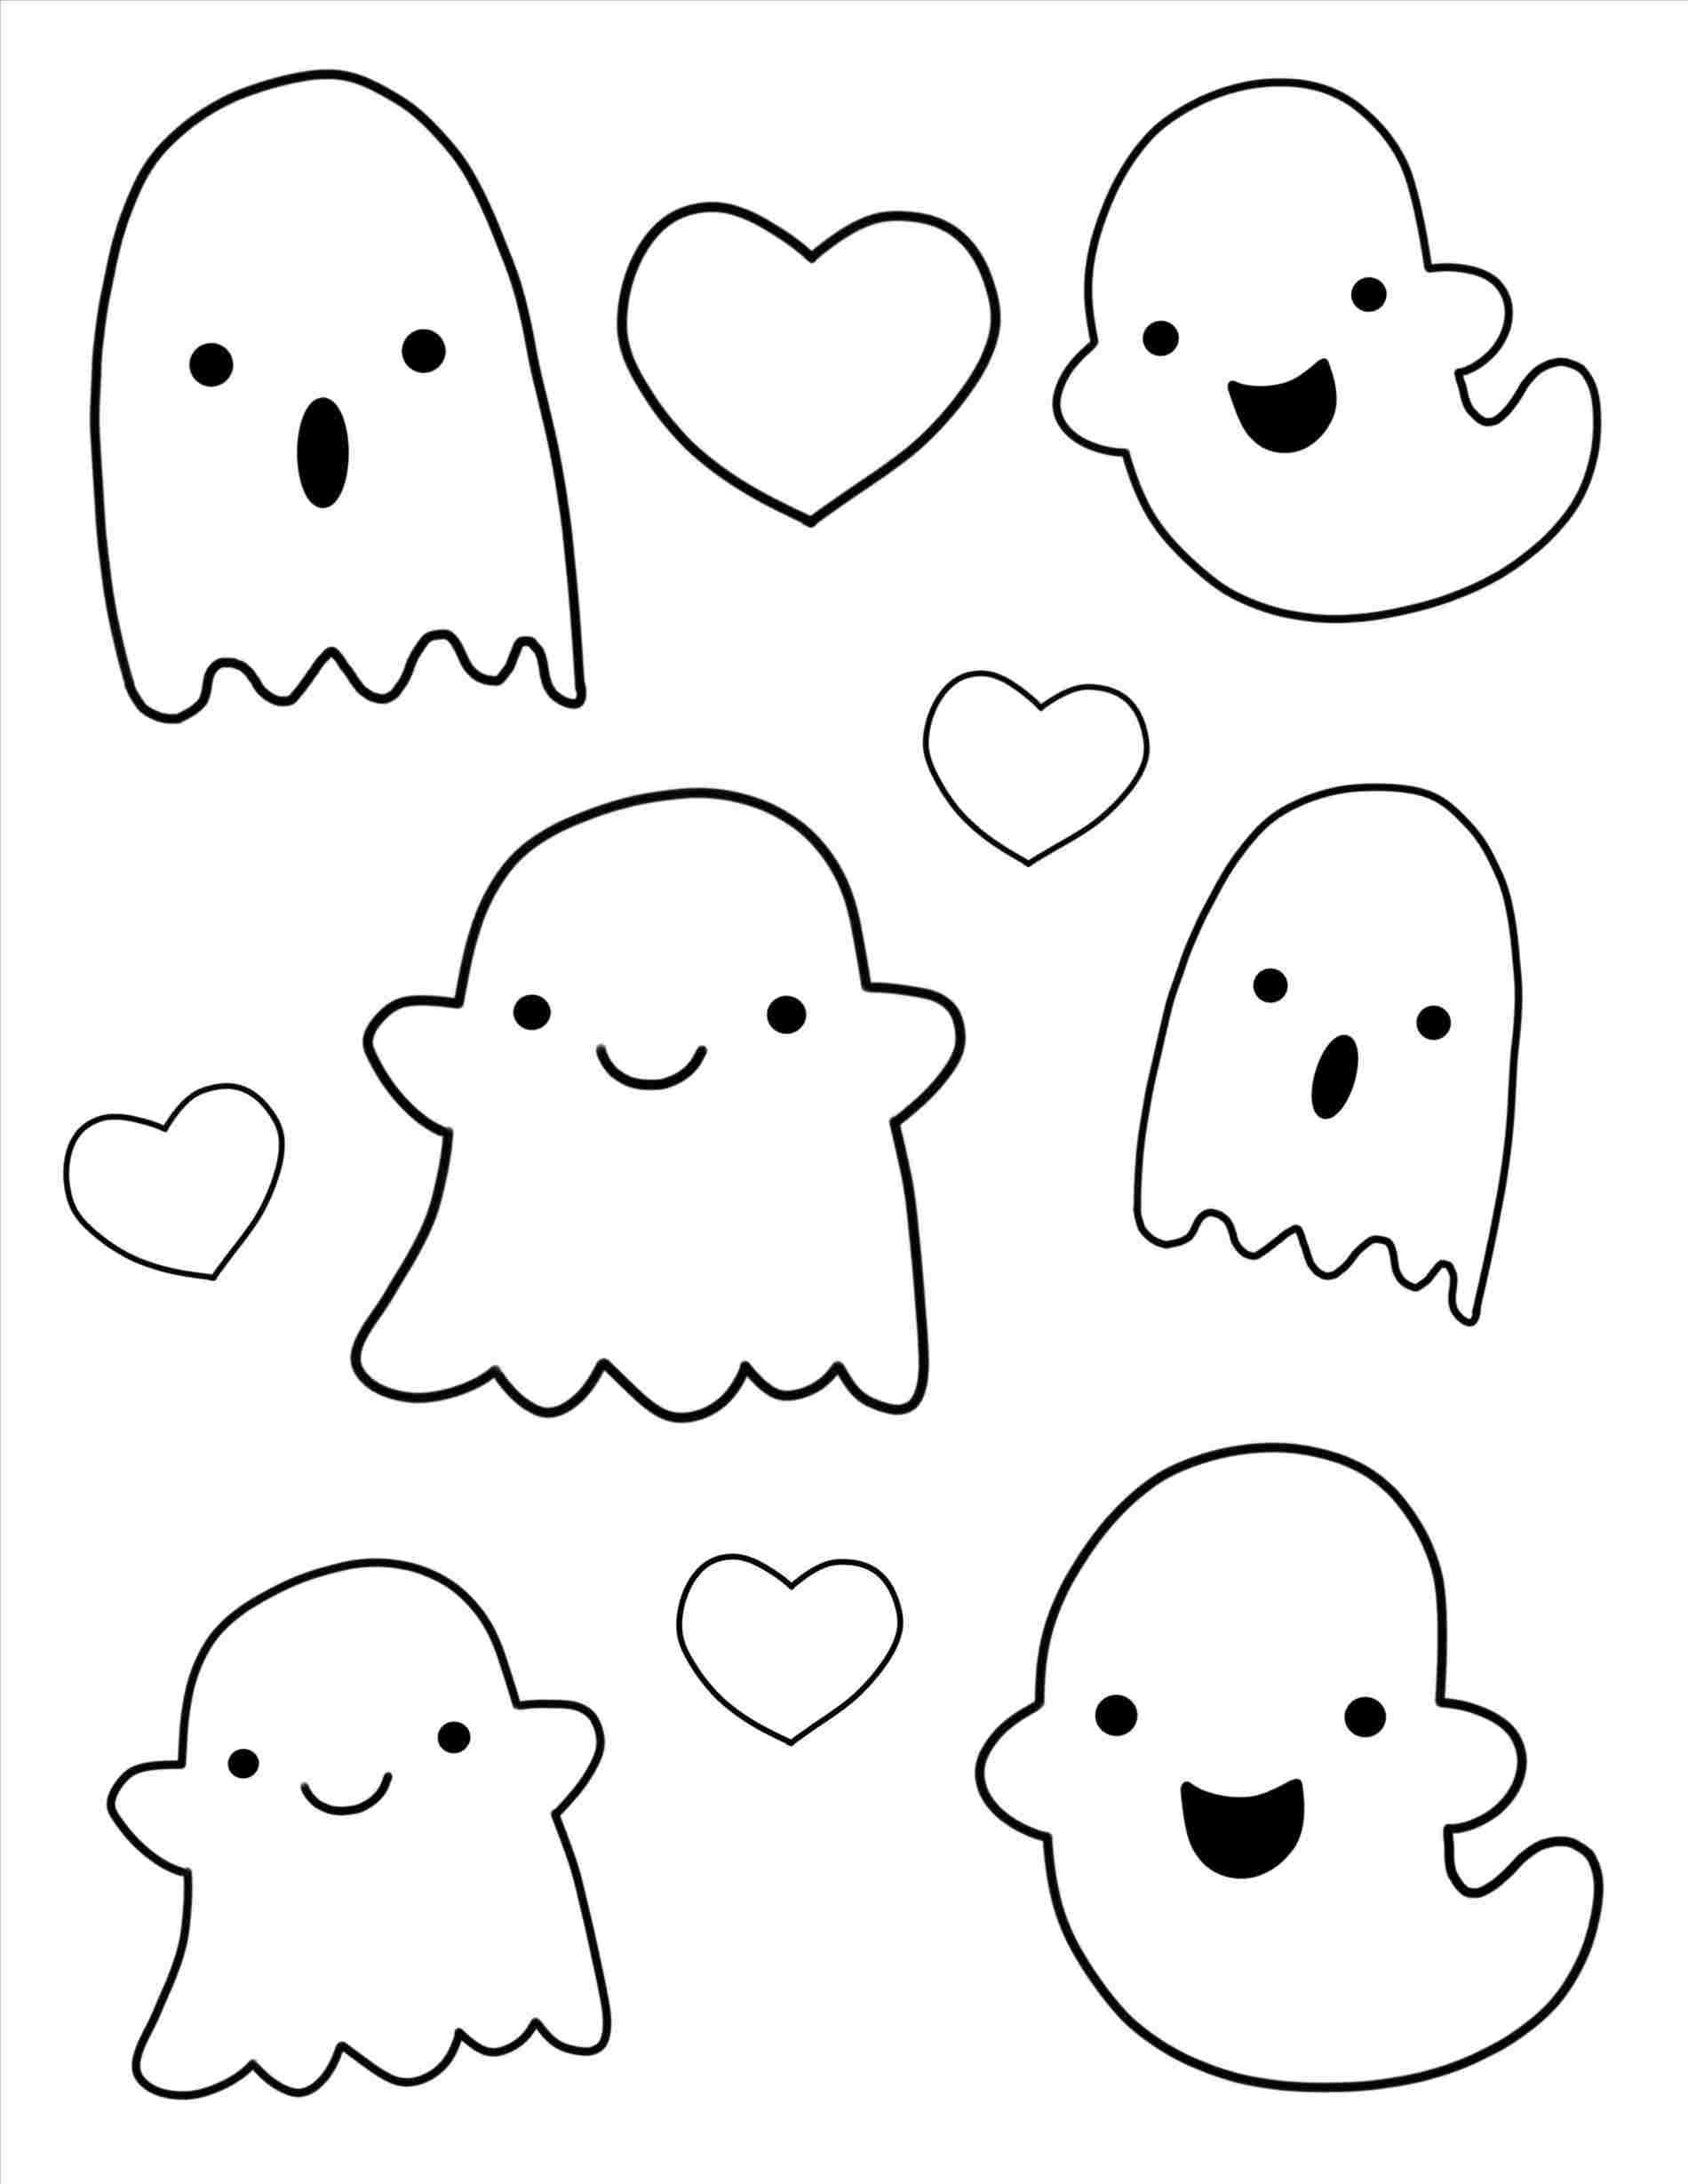 drawings of halloween stuff how to draw a halloween cat halloween cat step by step of halloween stuff drawings